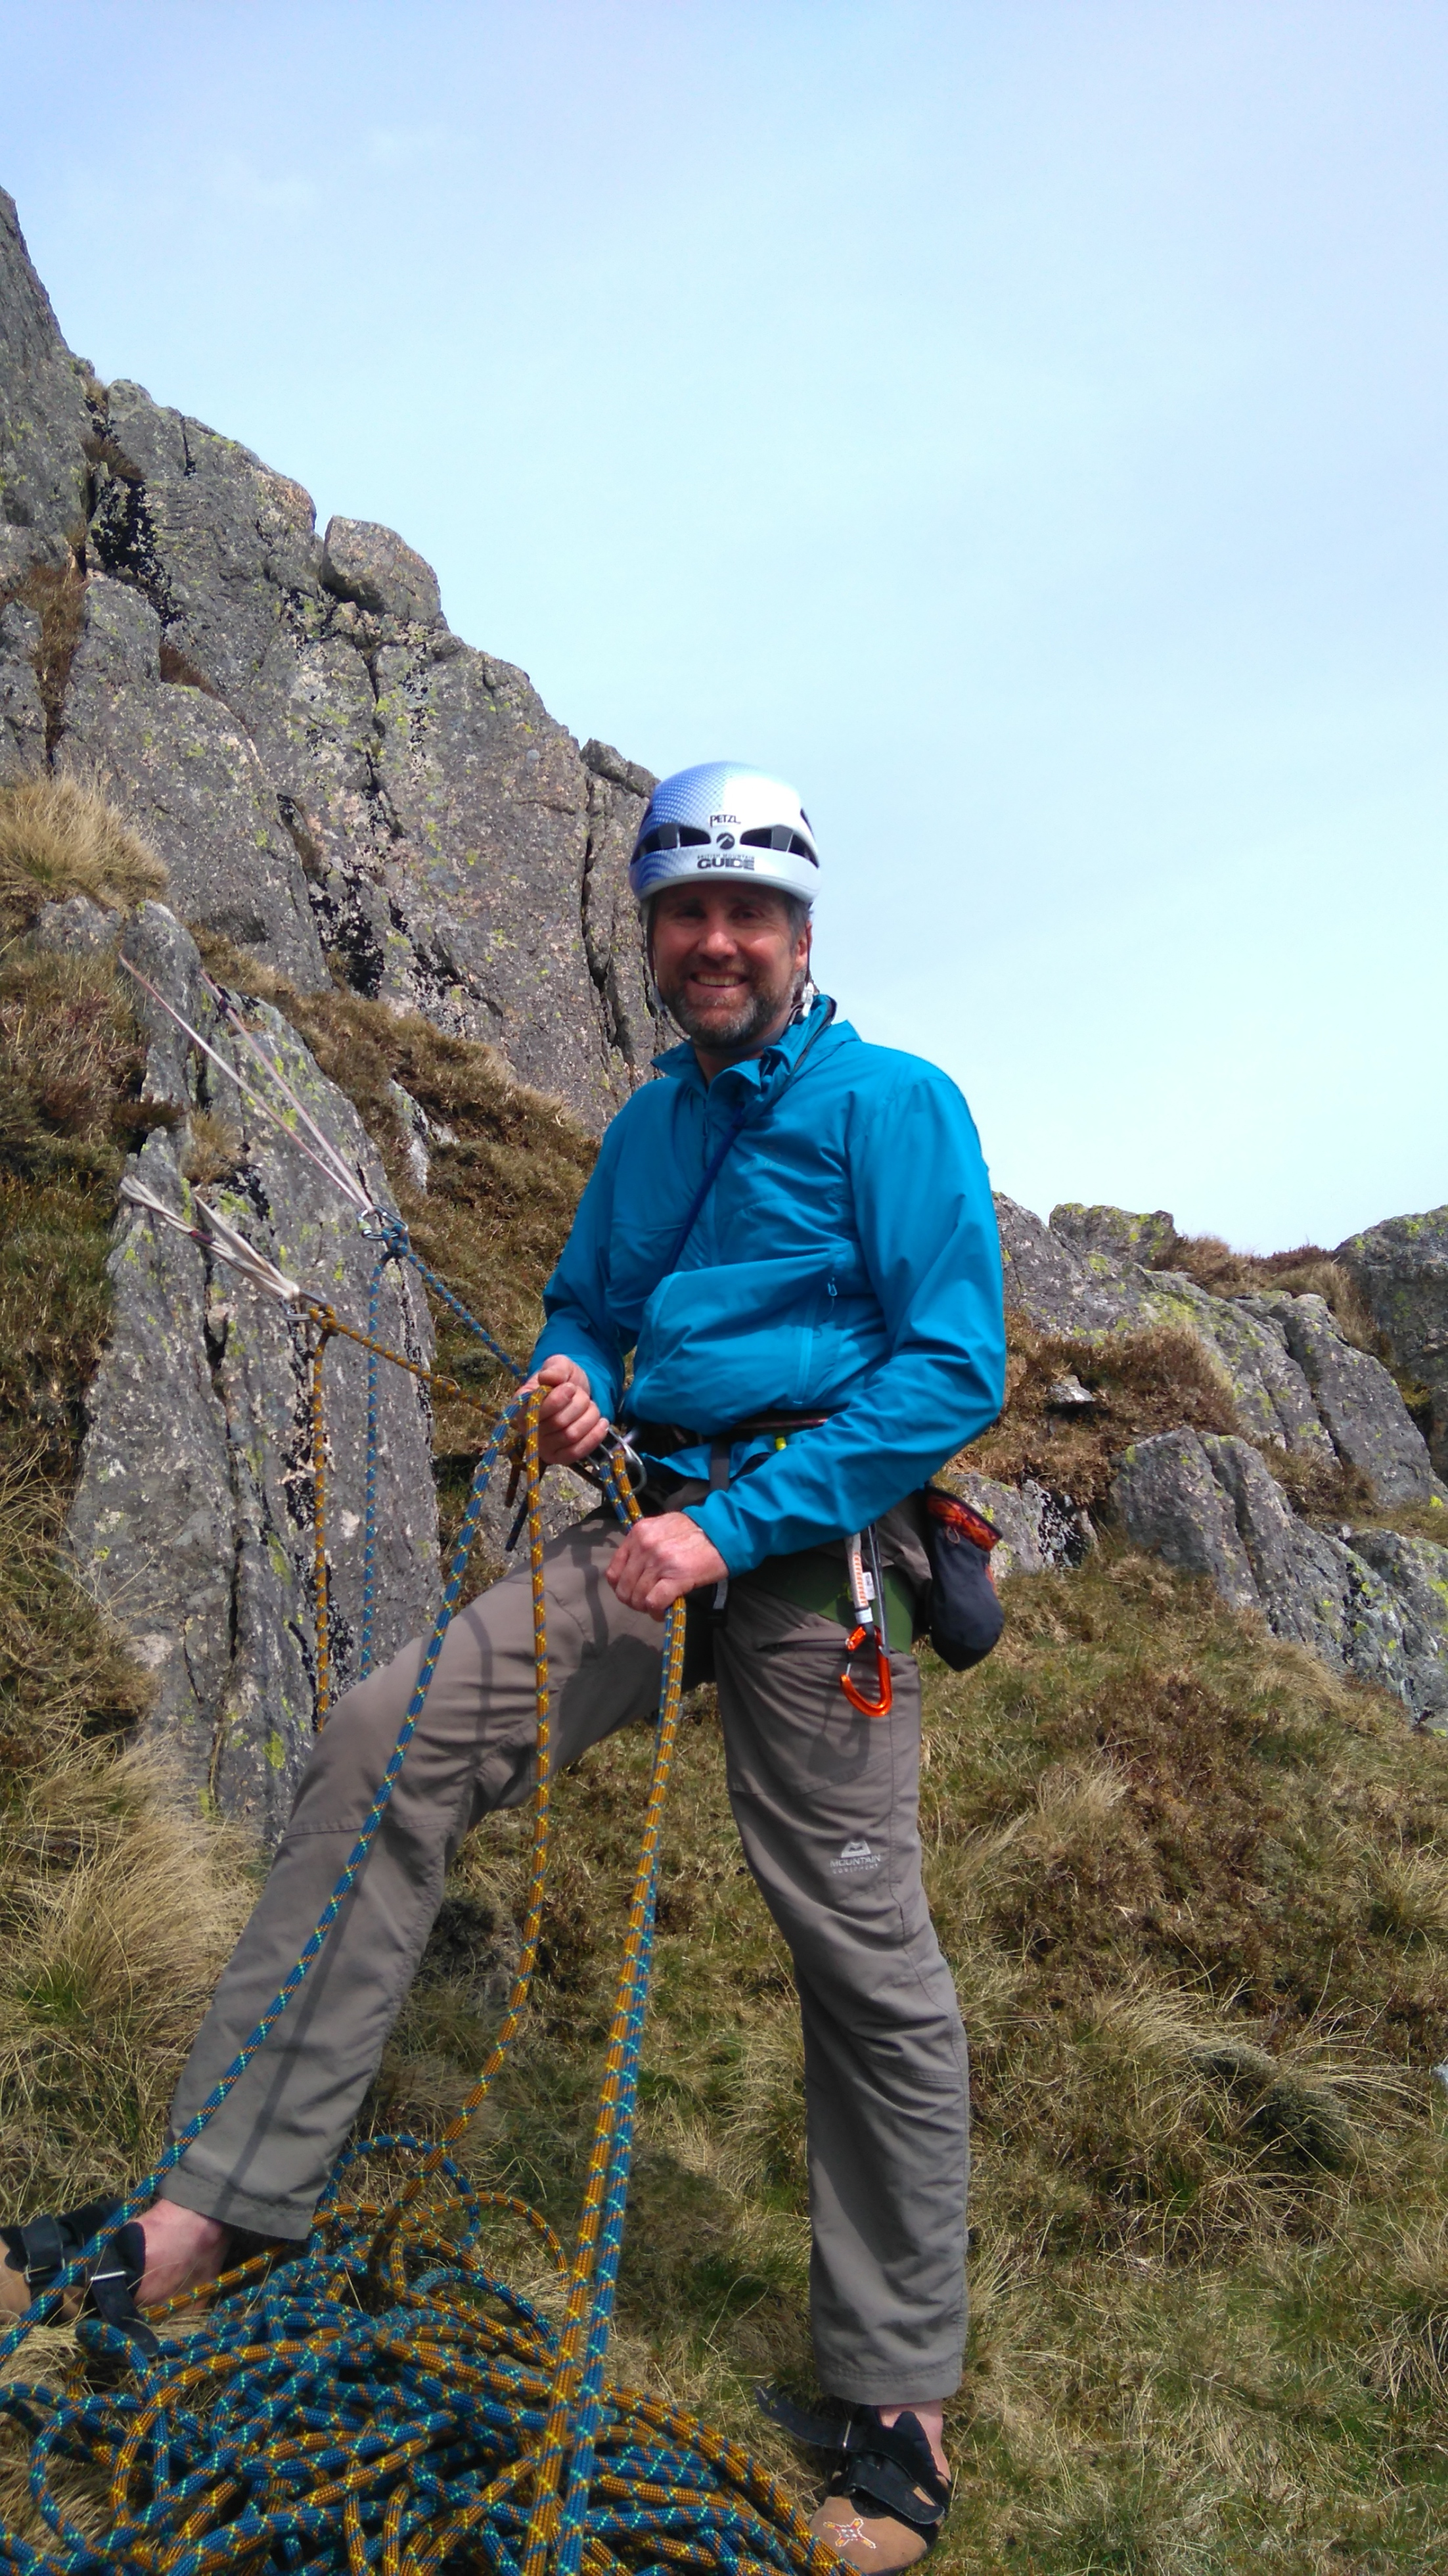 Belaying at the top of The Purple Edge. Photo credit: Chris Moore